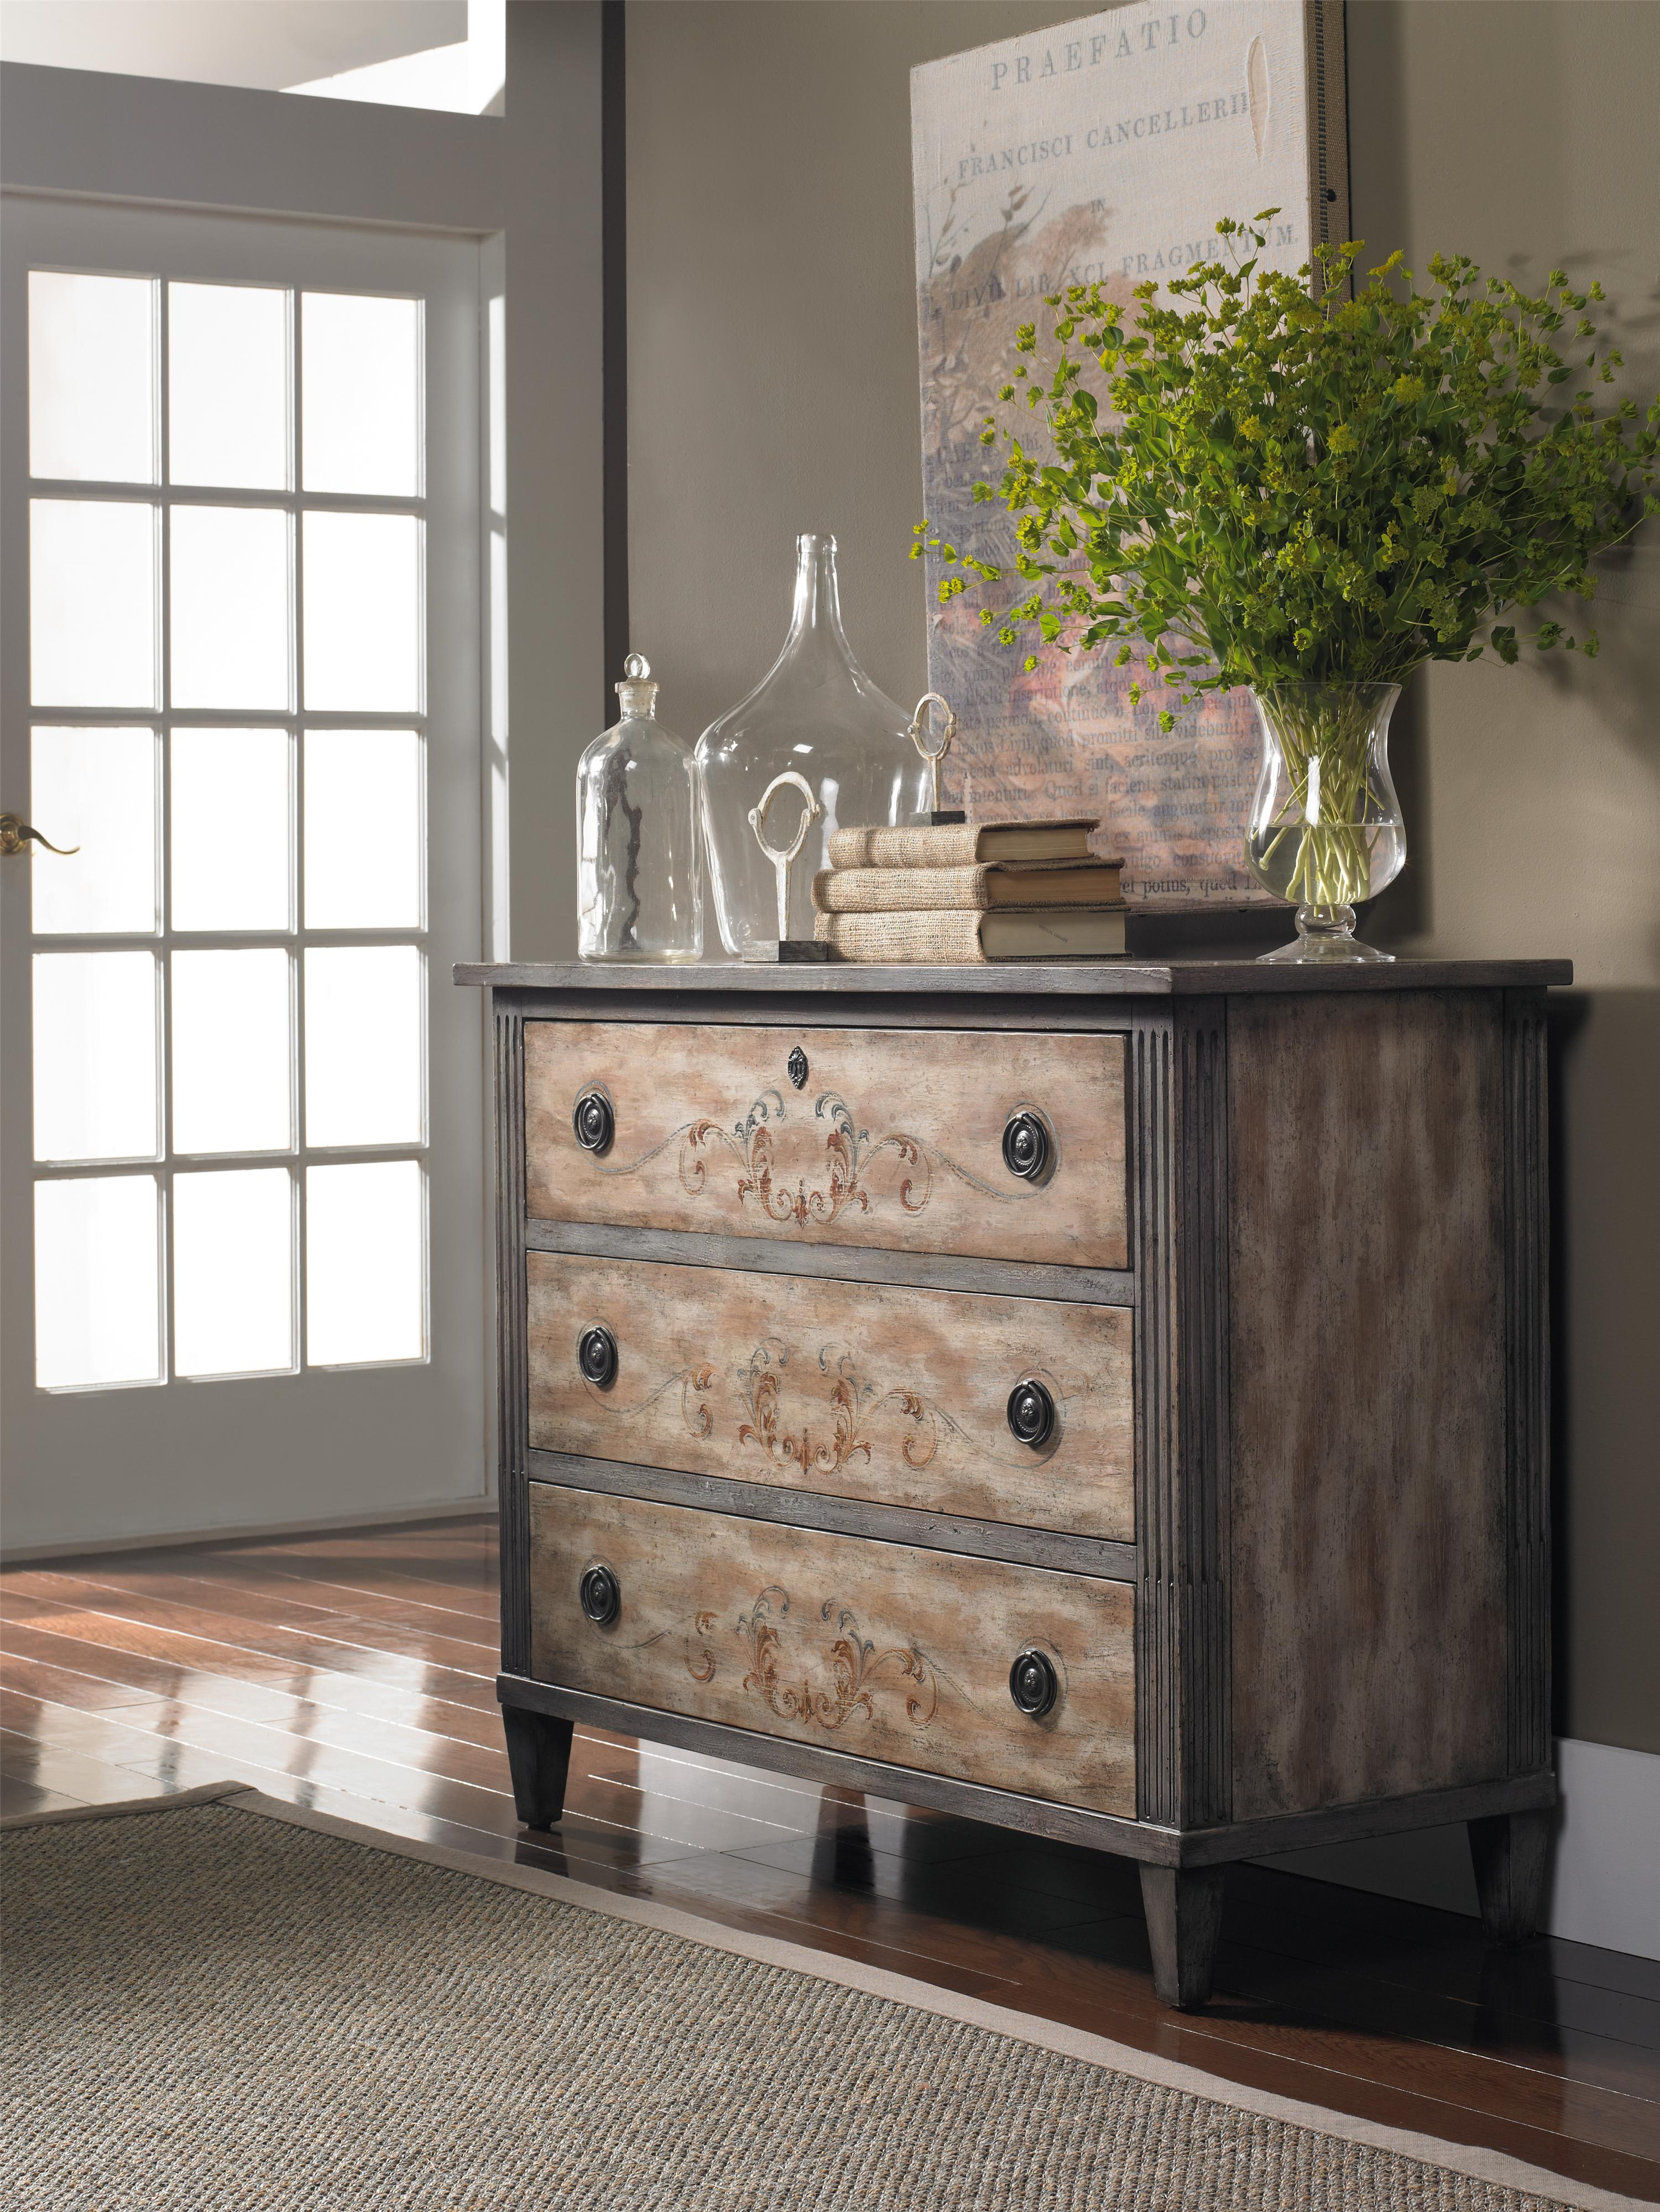 marvelous tv of trend at accents living and furniture room livings for sears ideas stands best